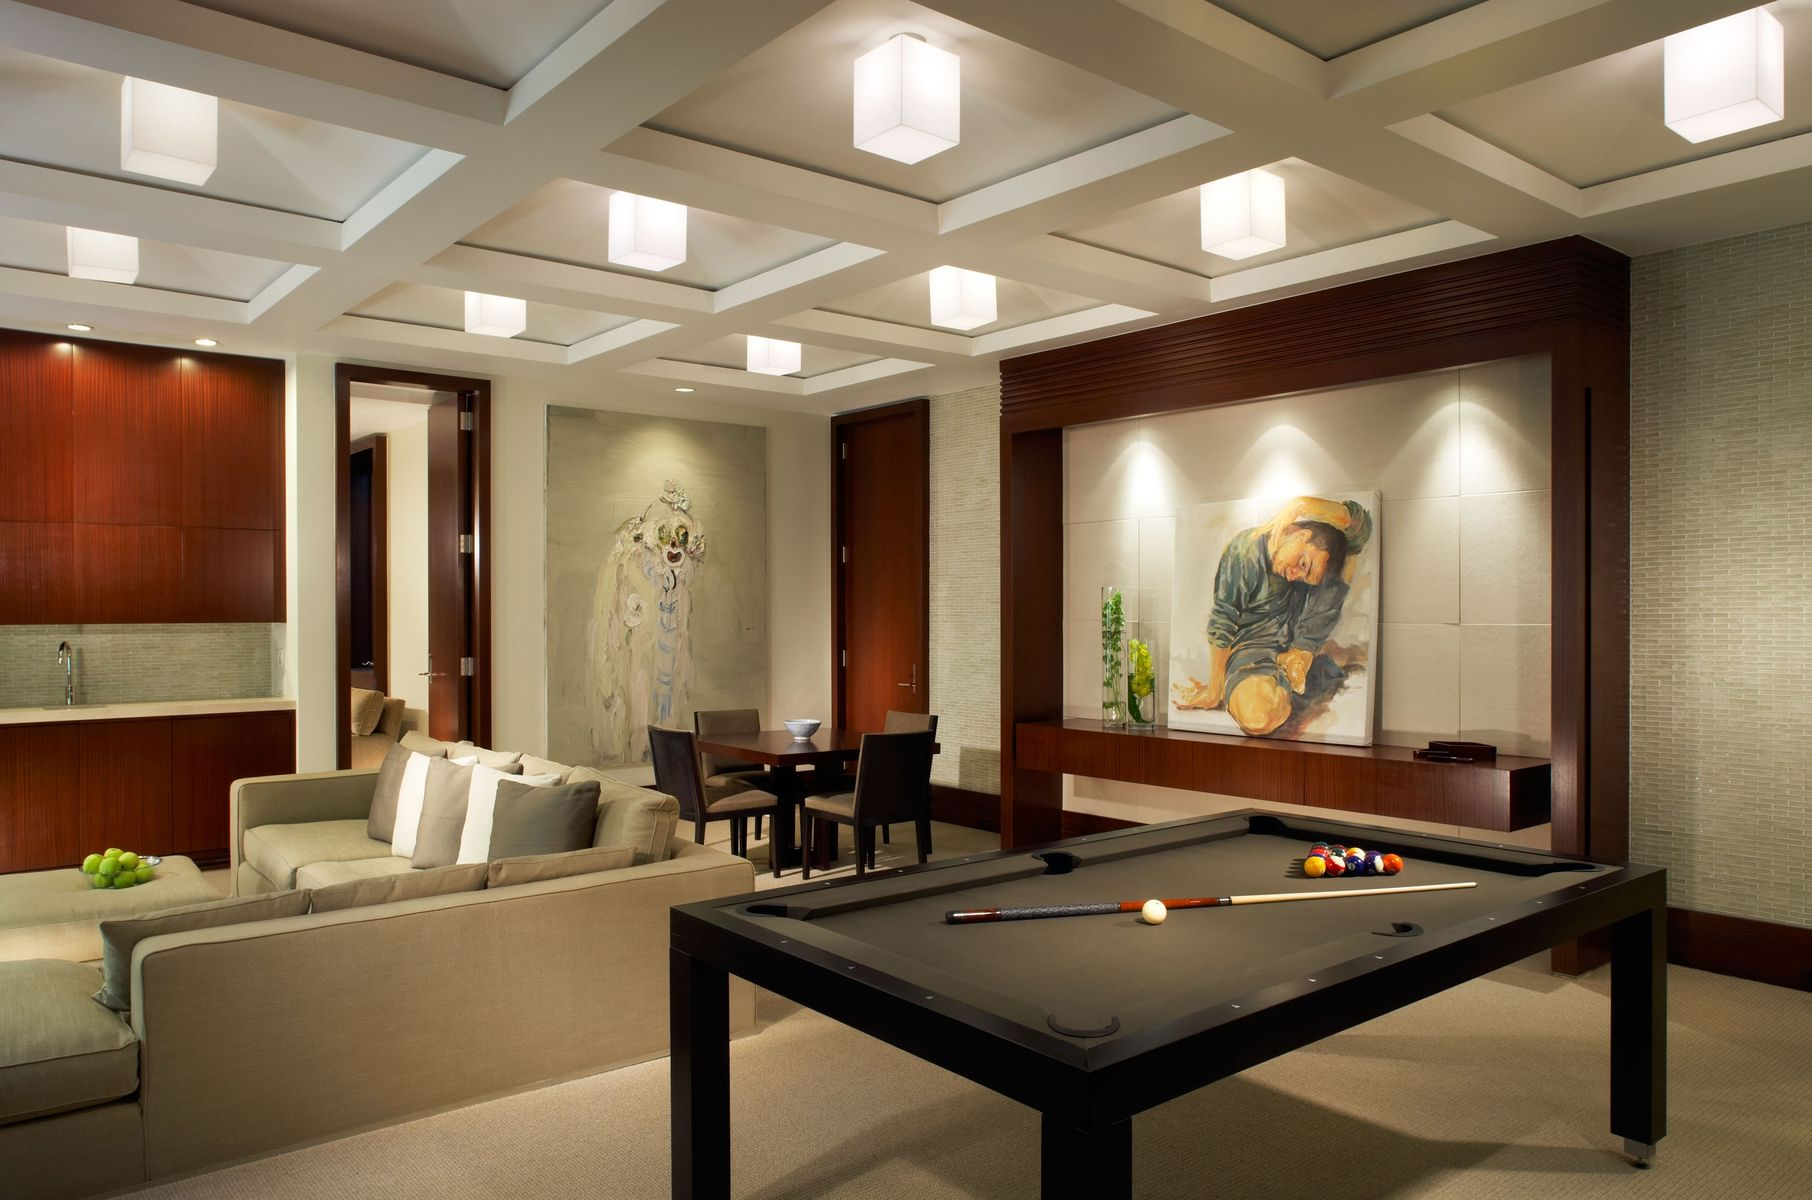 Game room i want this pool table for the home pinterest living roominteresting design about game room decorating ideas pictures with nice lamps model and coo ceiling model and dark bilyard table color and couch amipublicfo Gallery